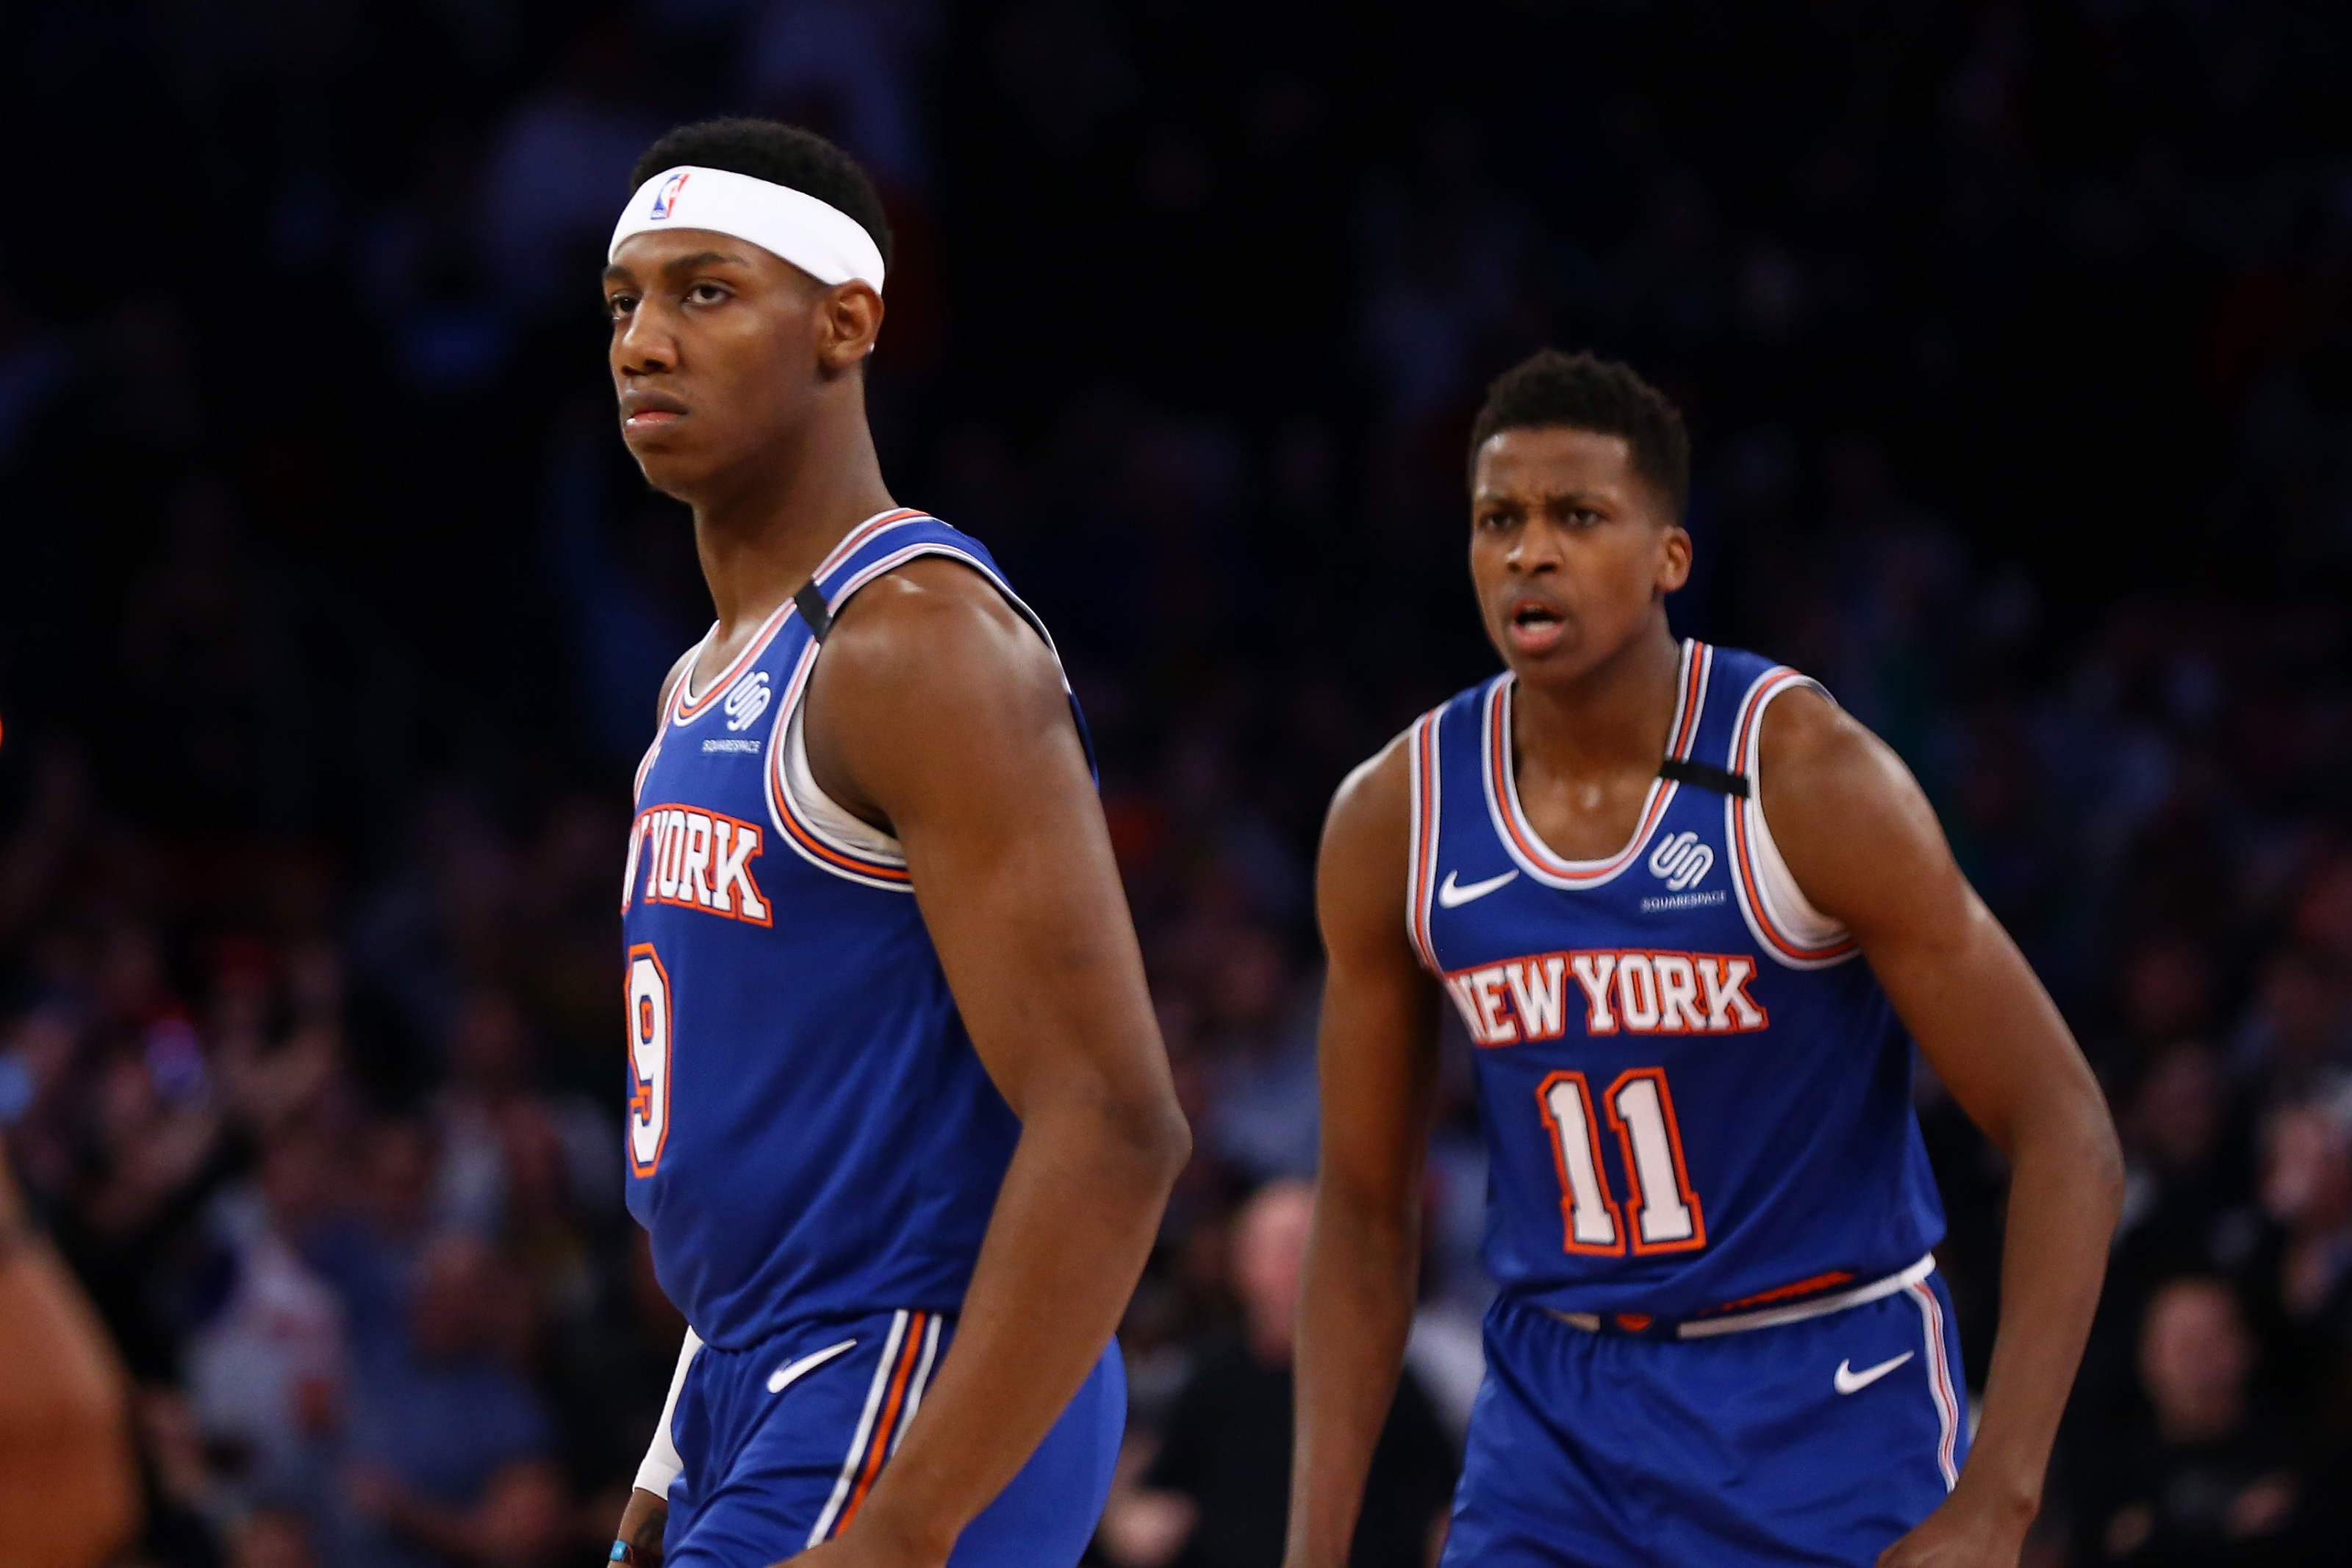 The New York Knicks has continued to lay a solid foundation this offseason